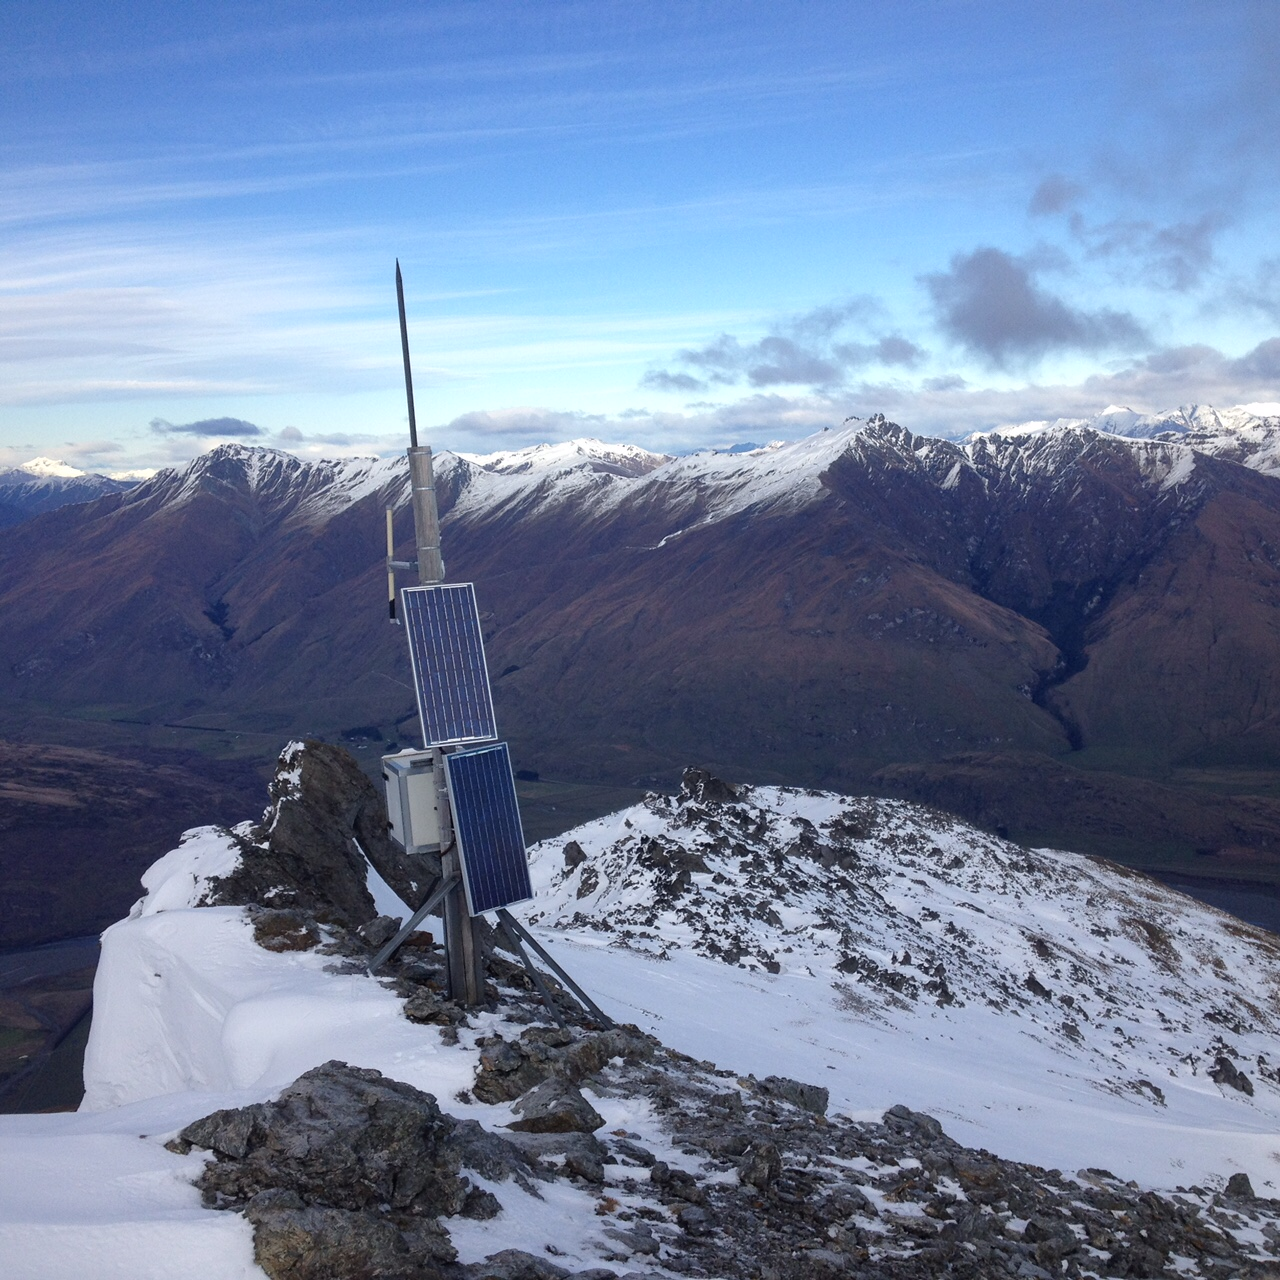 Repeater near Wanaka